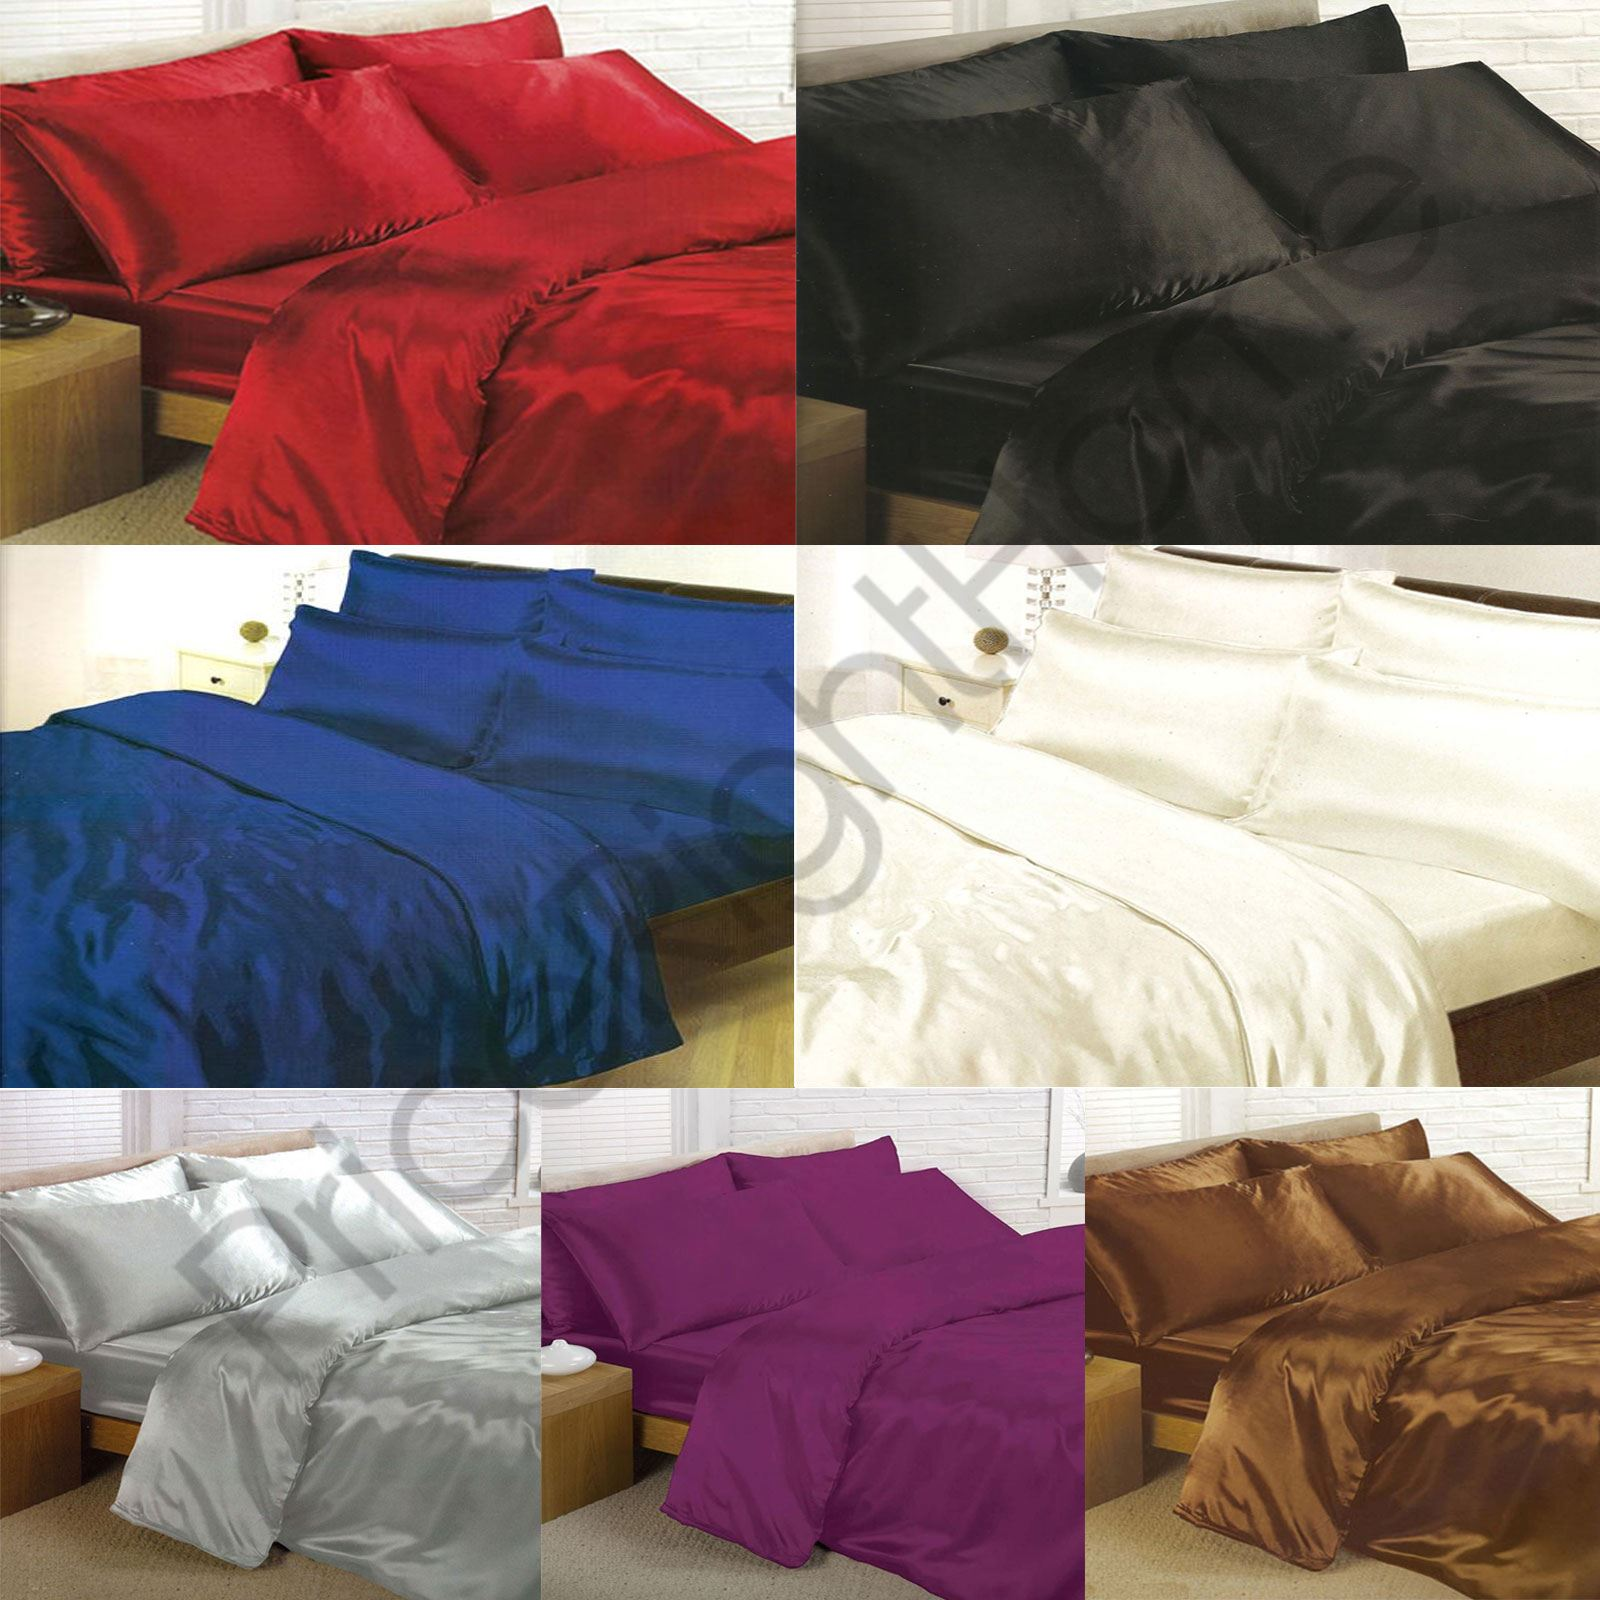 Satin Bedding Sets Duvet Cover Fitted Sheet Pillowcases